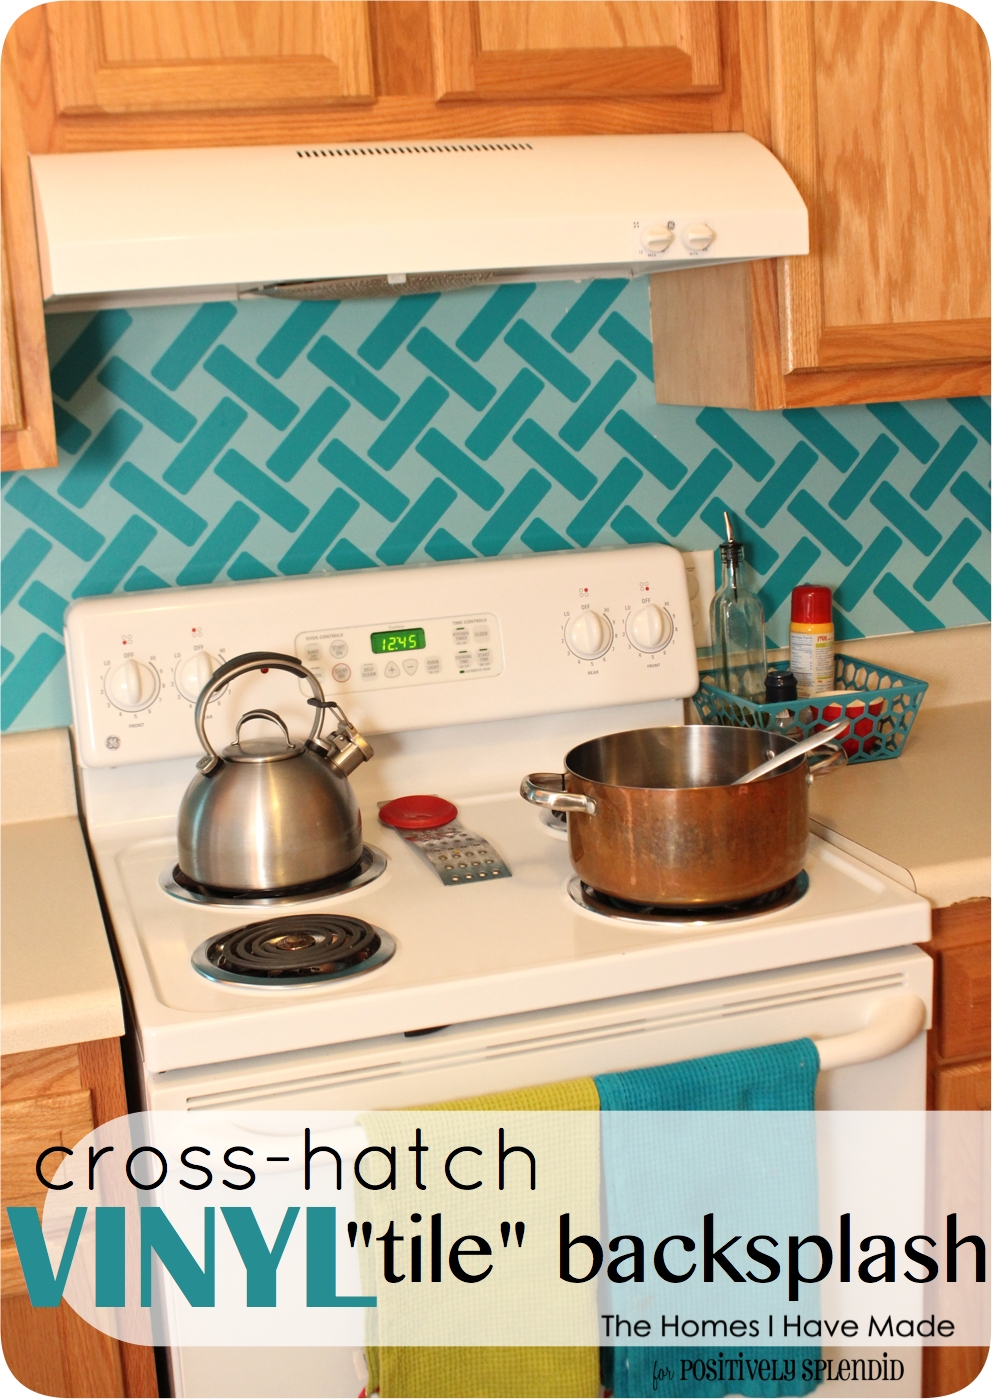 Attractive Cross Hatch Vinyl U201cTileu201d Backsplash!